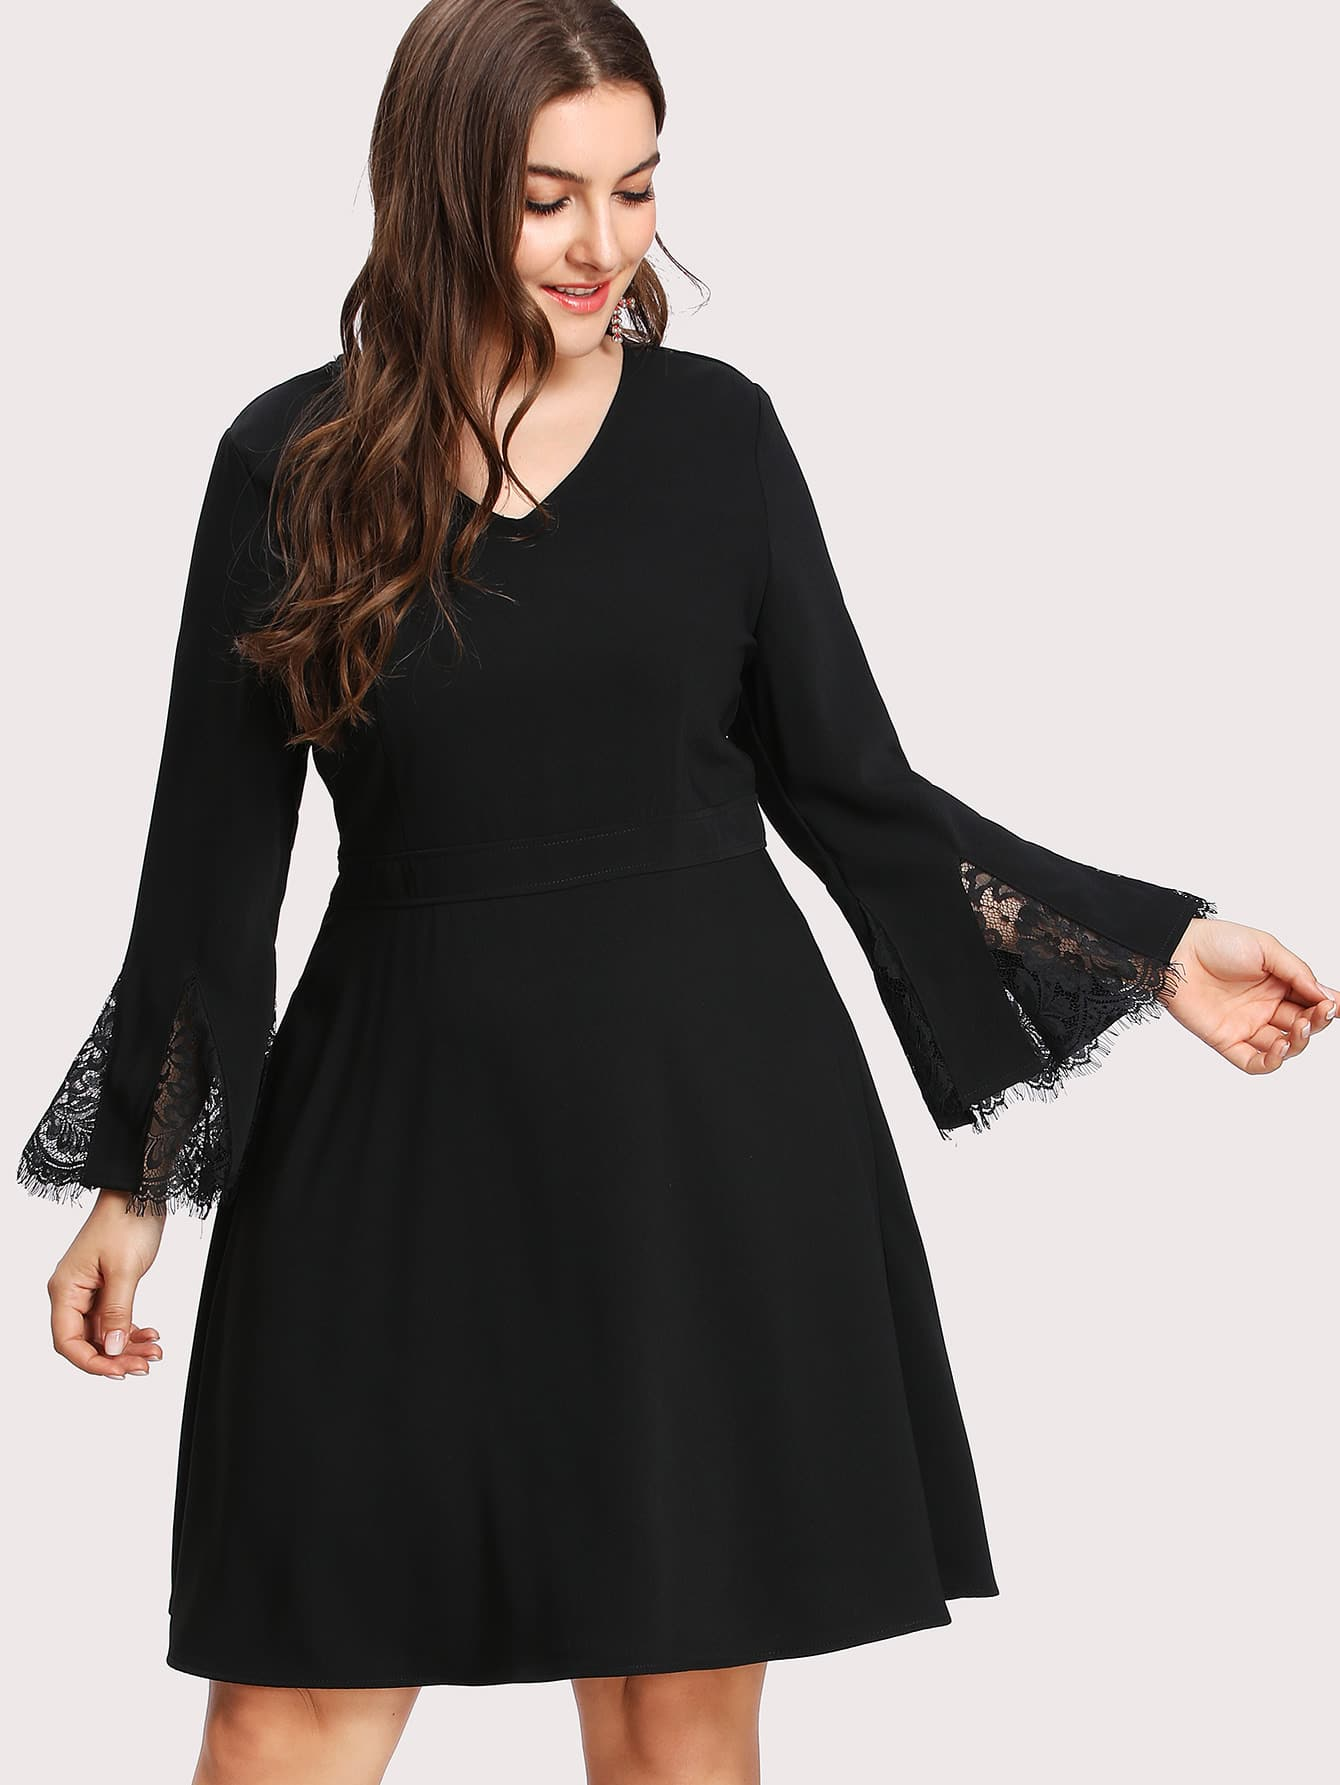 Lace Insert Bell Sleeve Fit & Flare Dress lace insert fit